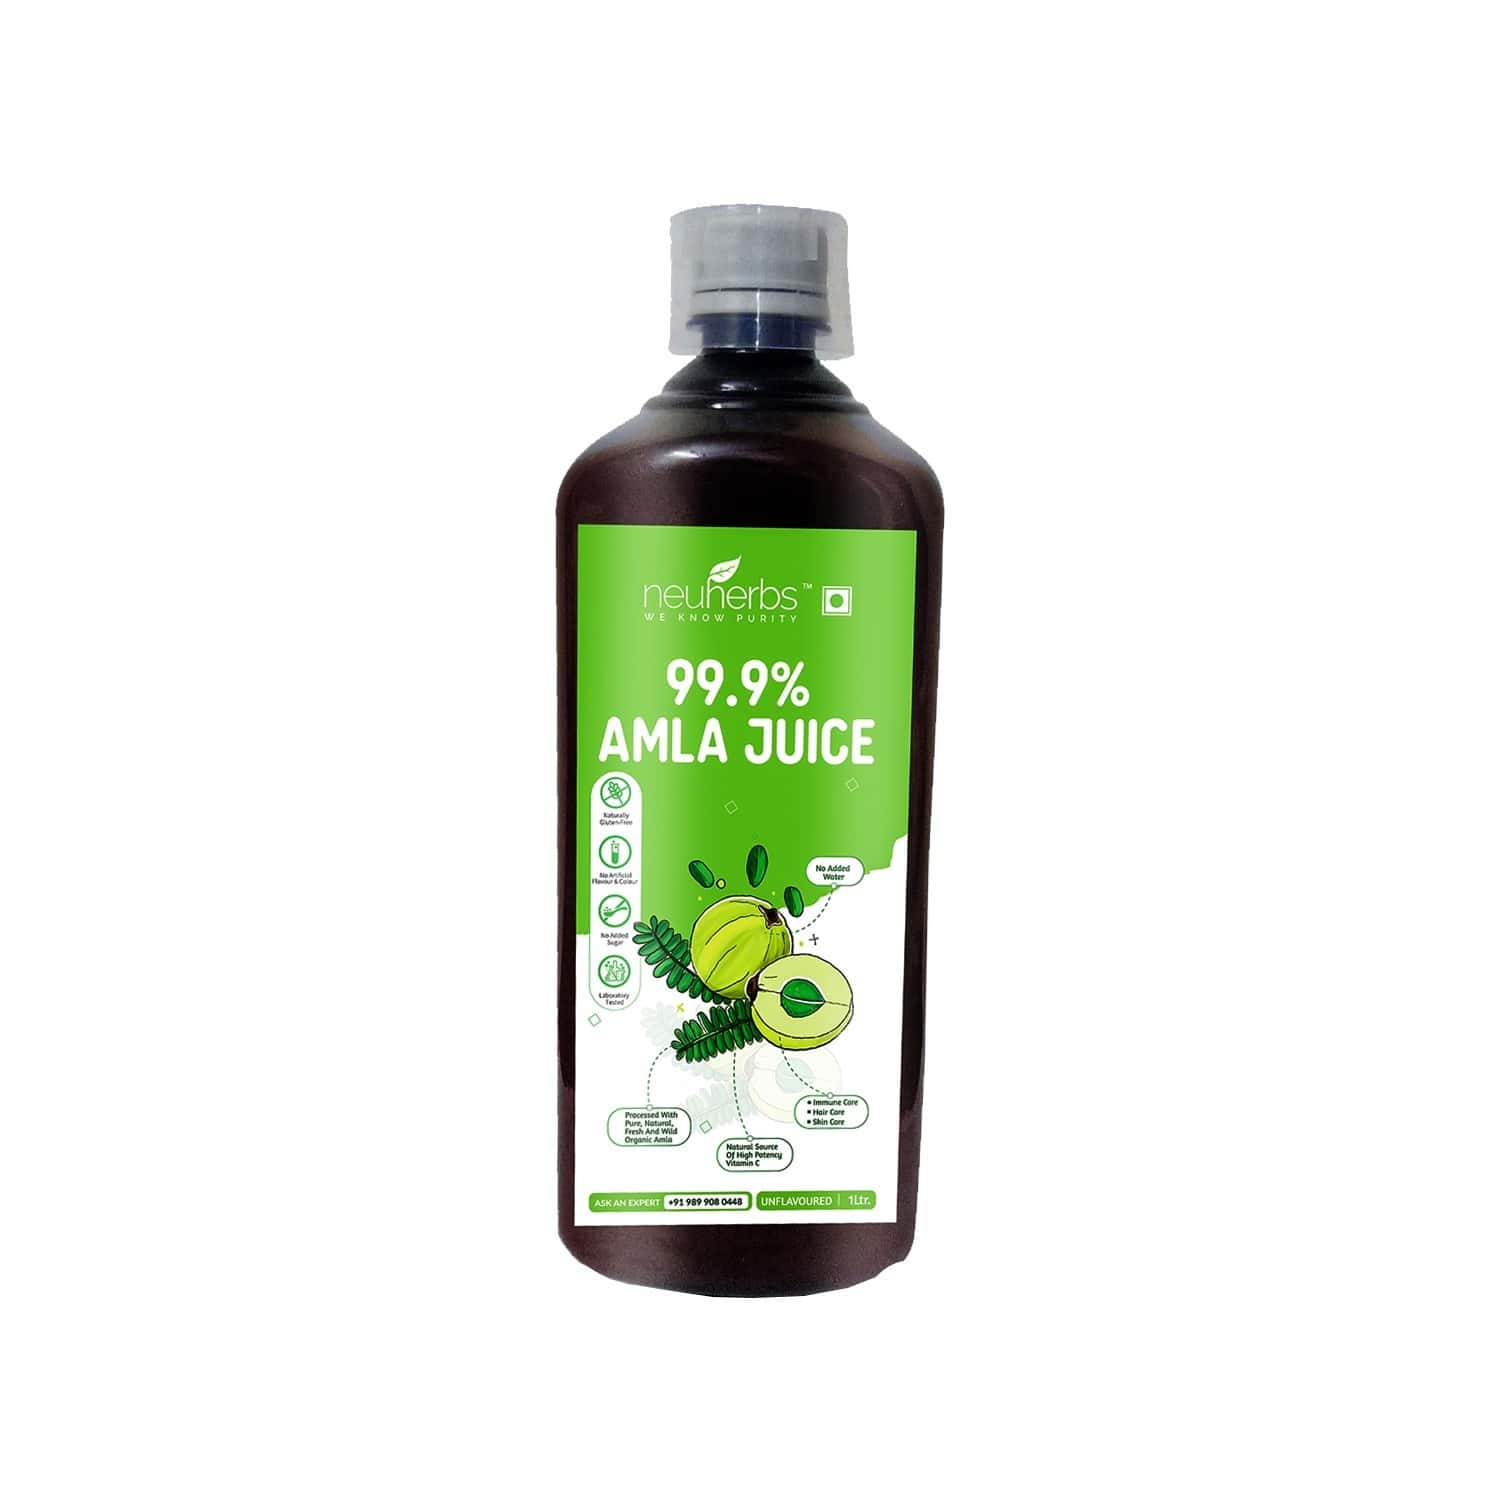 Neuherbs Amla Juice For Better Immunity And Digestion With A Natural Source Of High Potency Vitamin C - 1 L